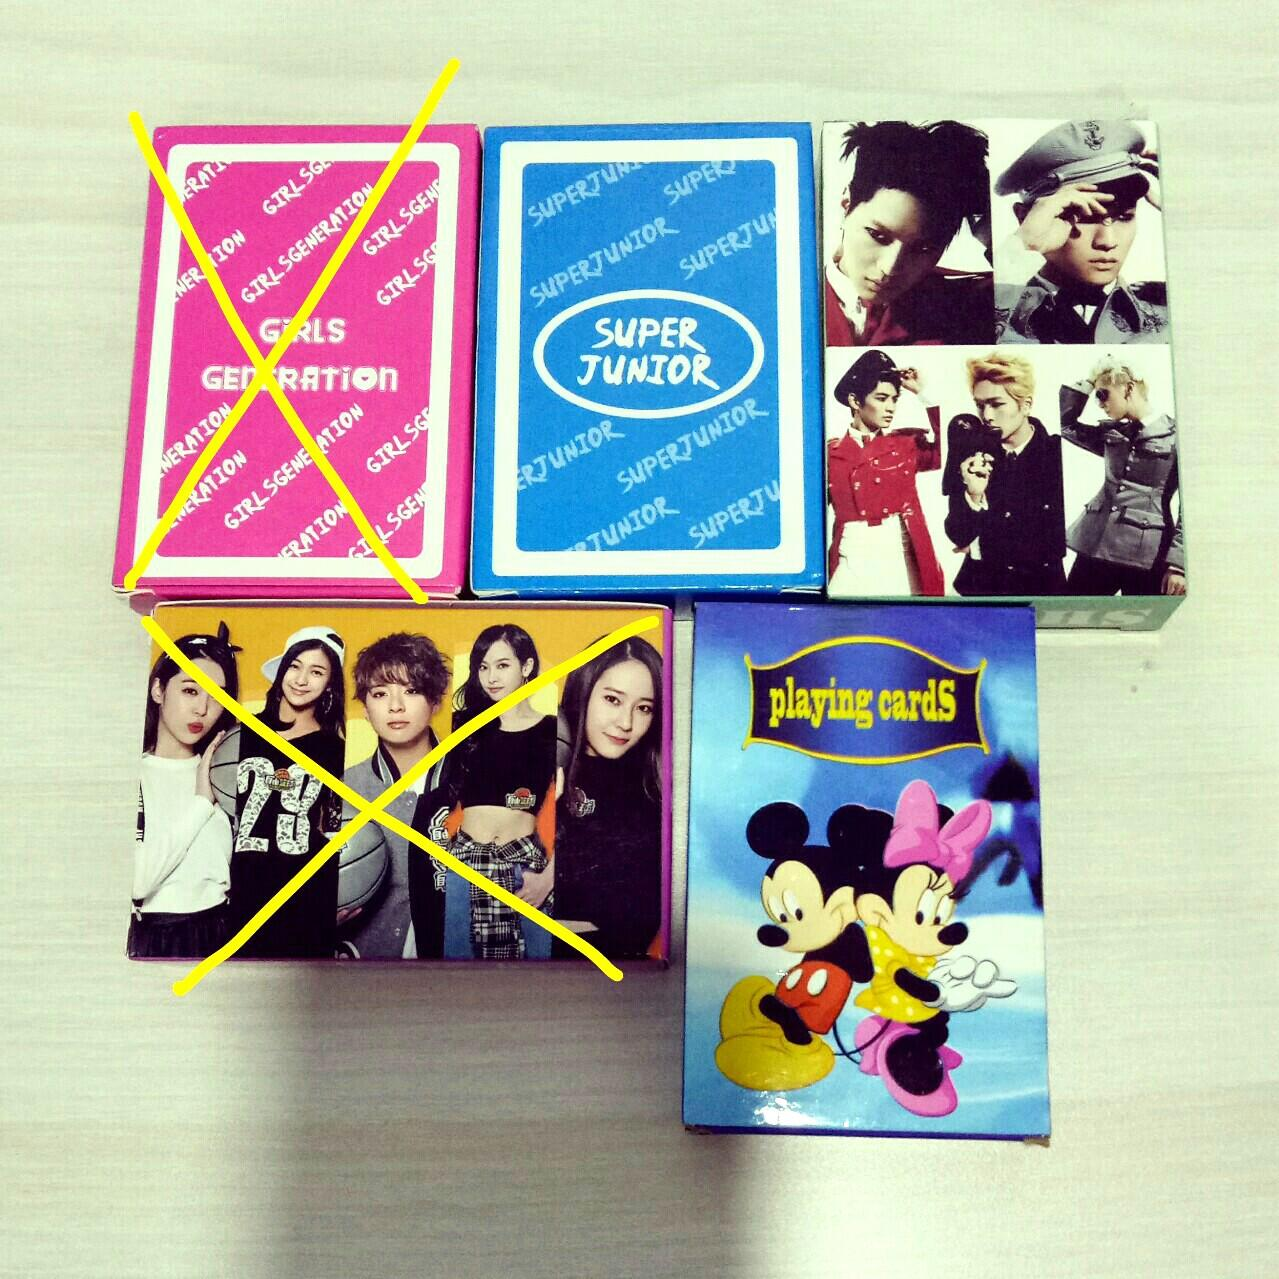 [WTS] KPOP POKER PLAYING CARD (SUPER JUNIOR/SNSD/SHINee/f(x)/Mickey Mouse)